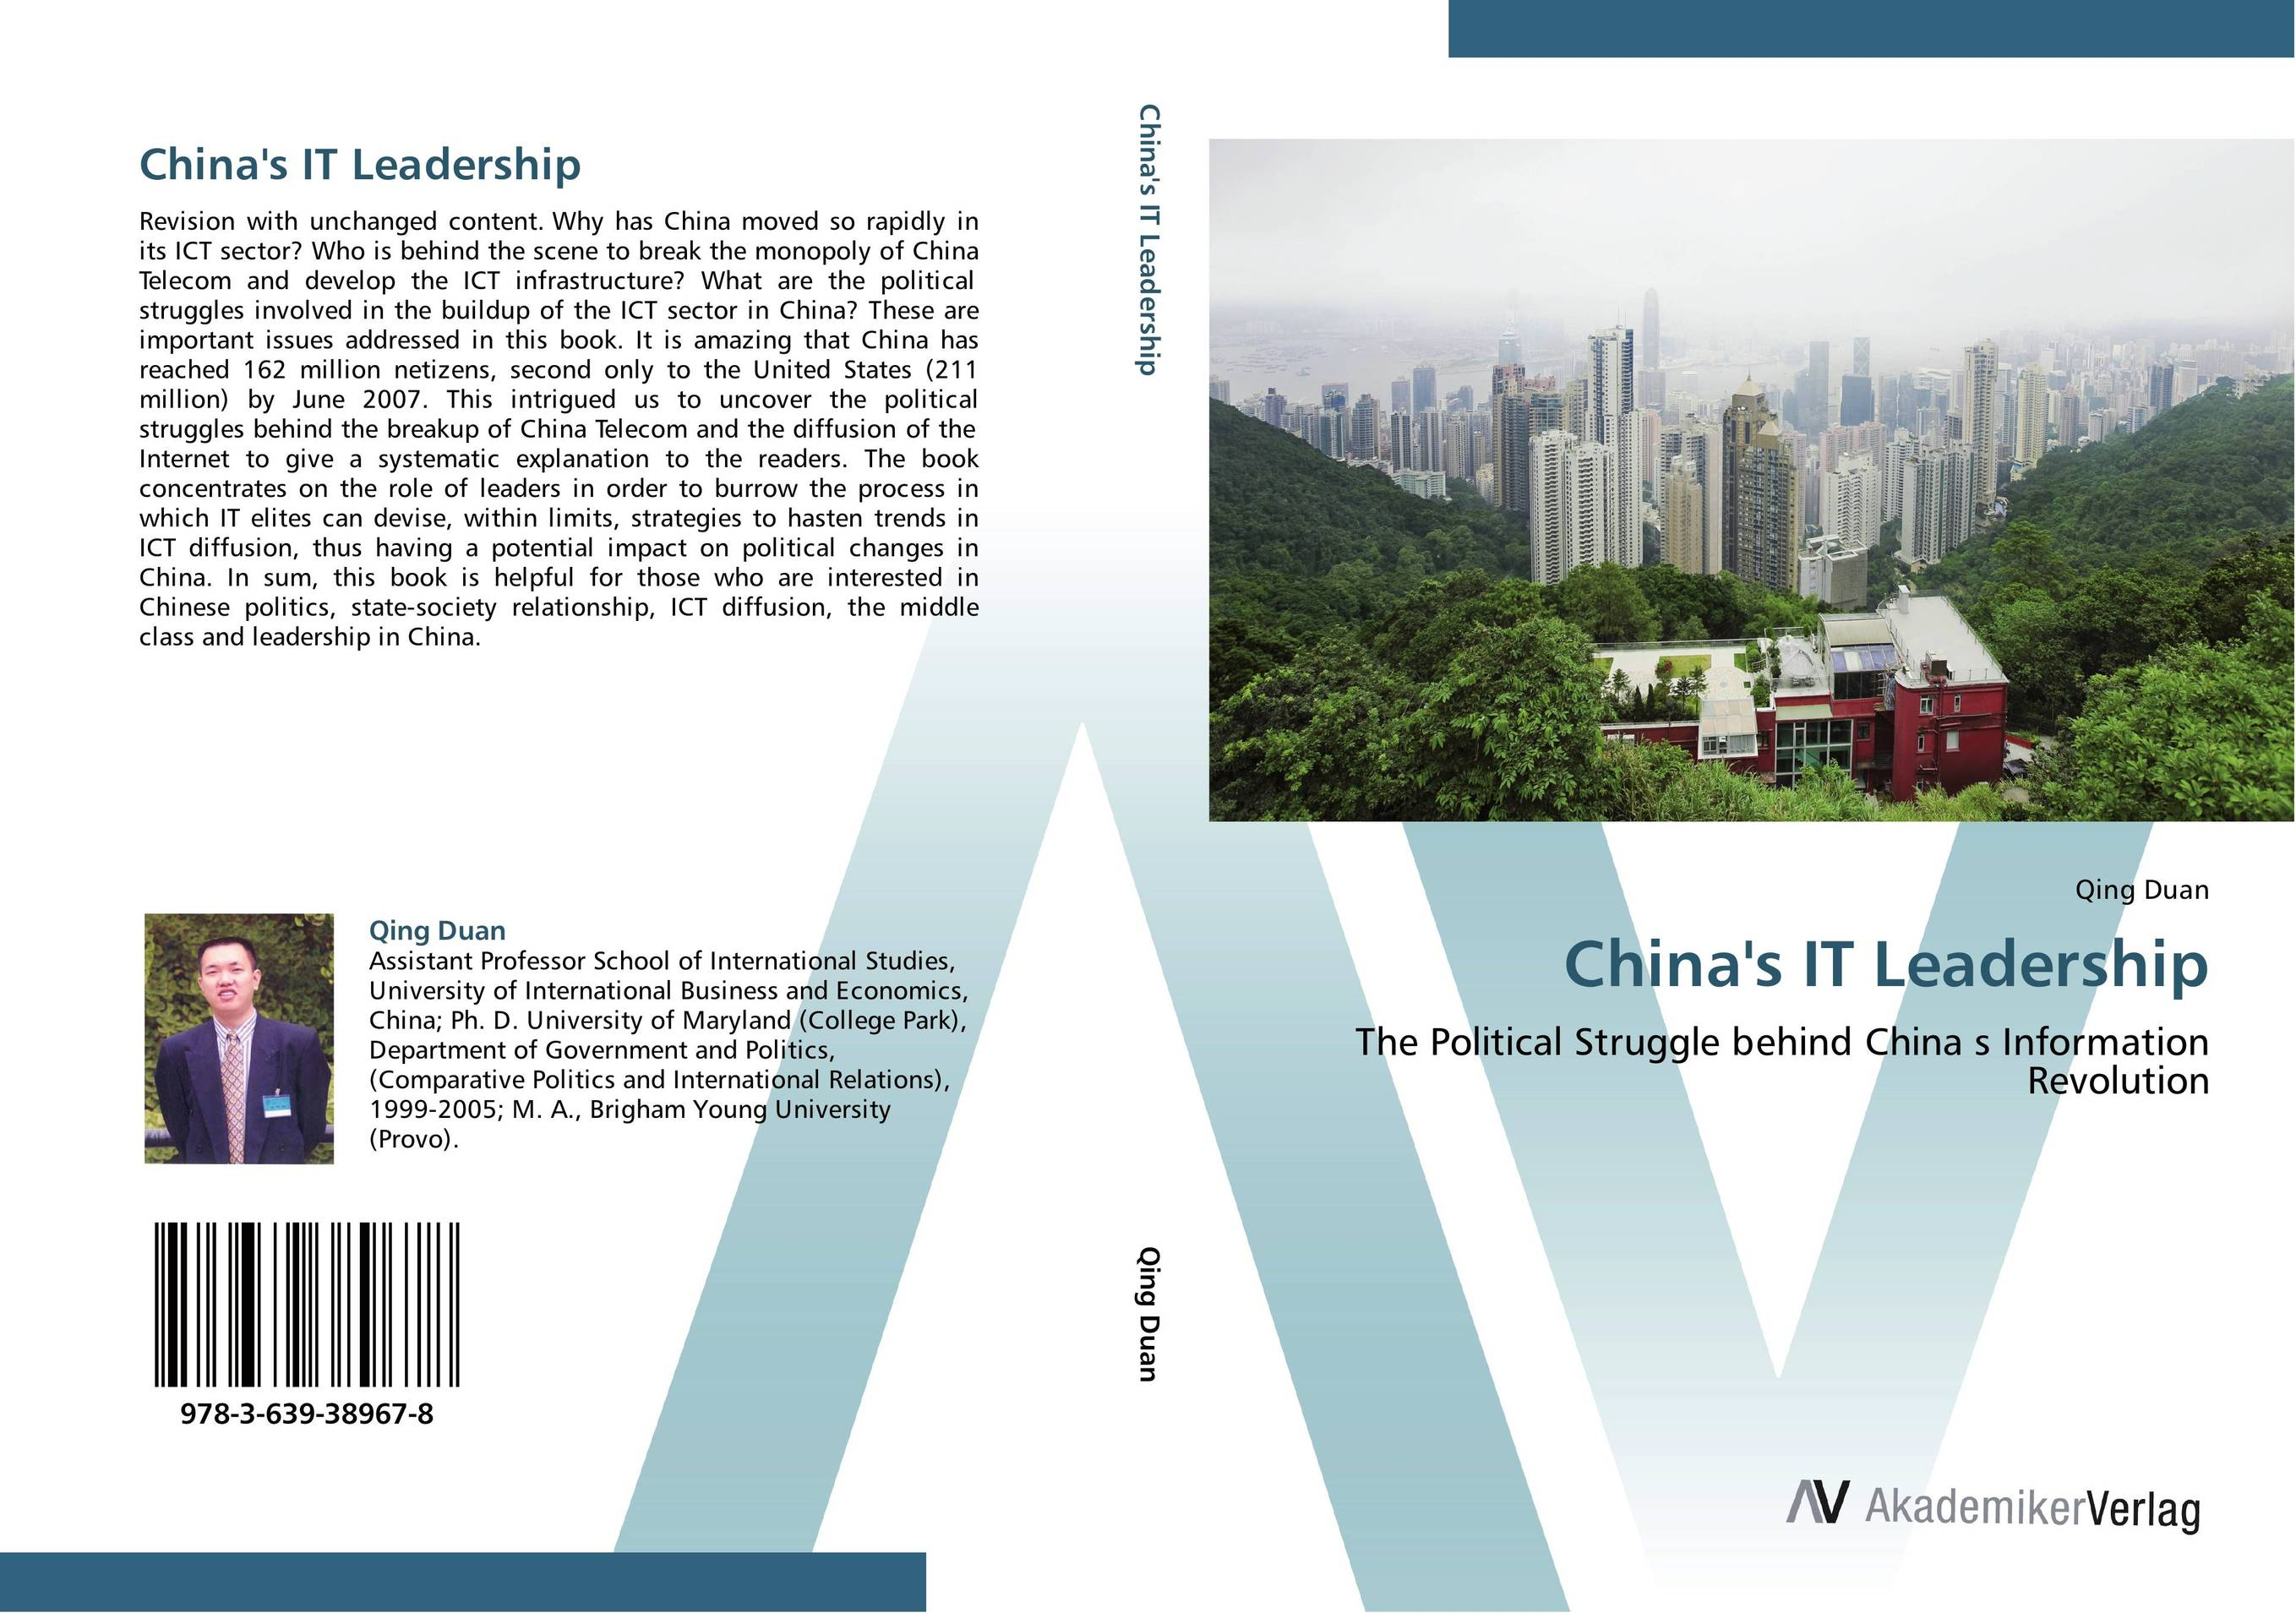 China's IT Leadership what are behind the science parks and business incubators in china